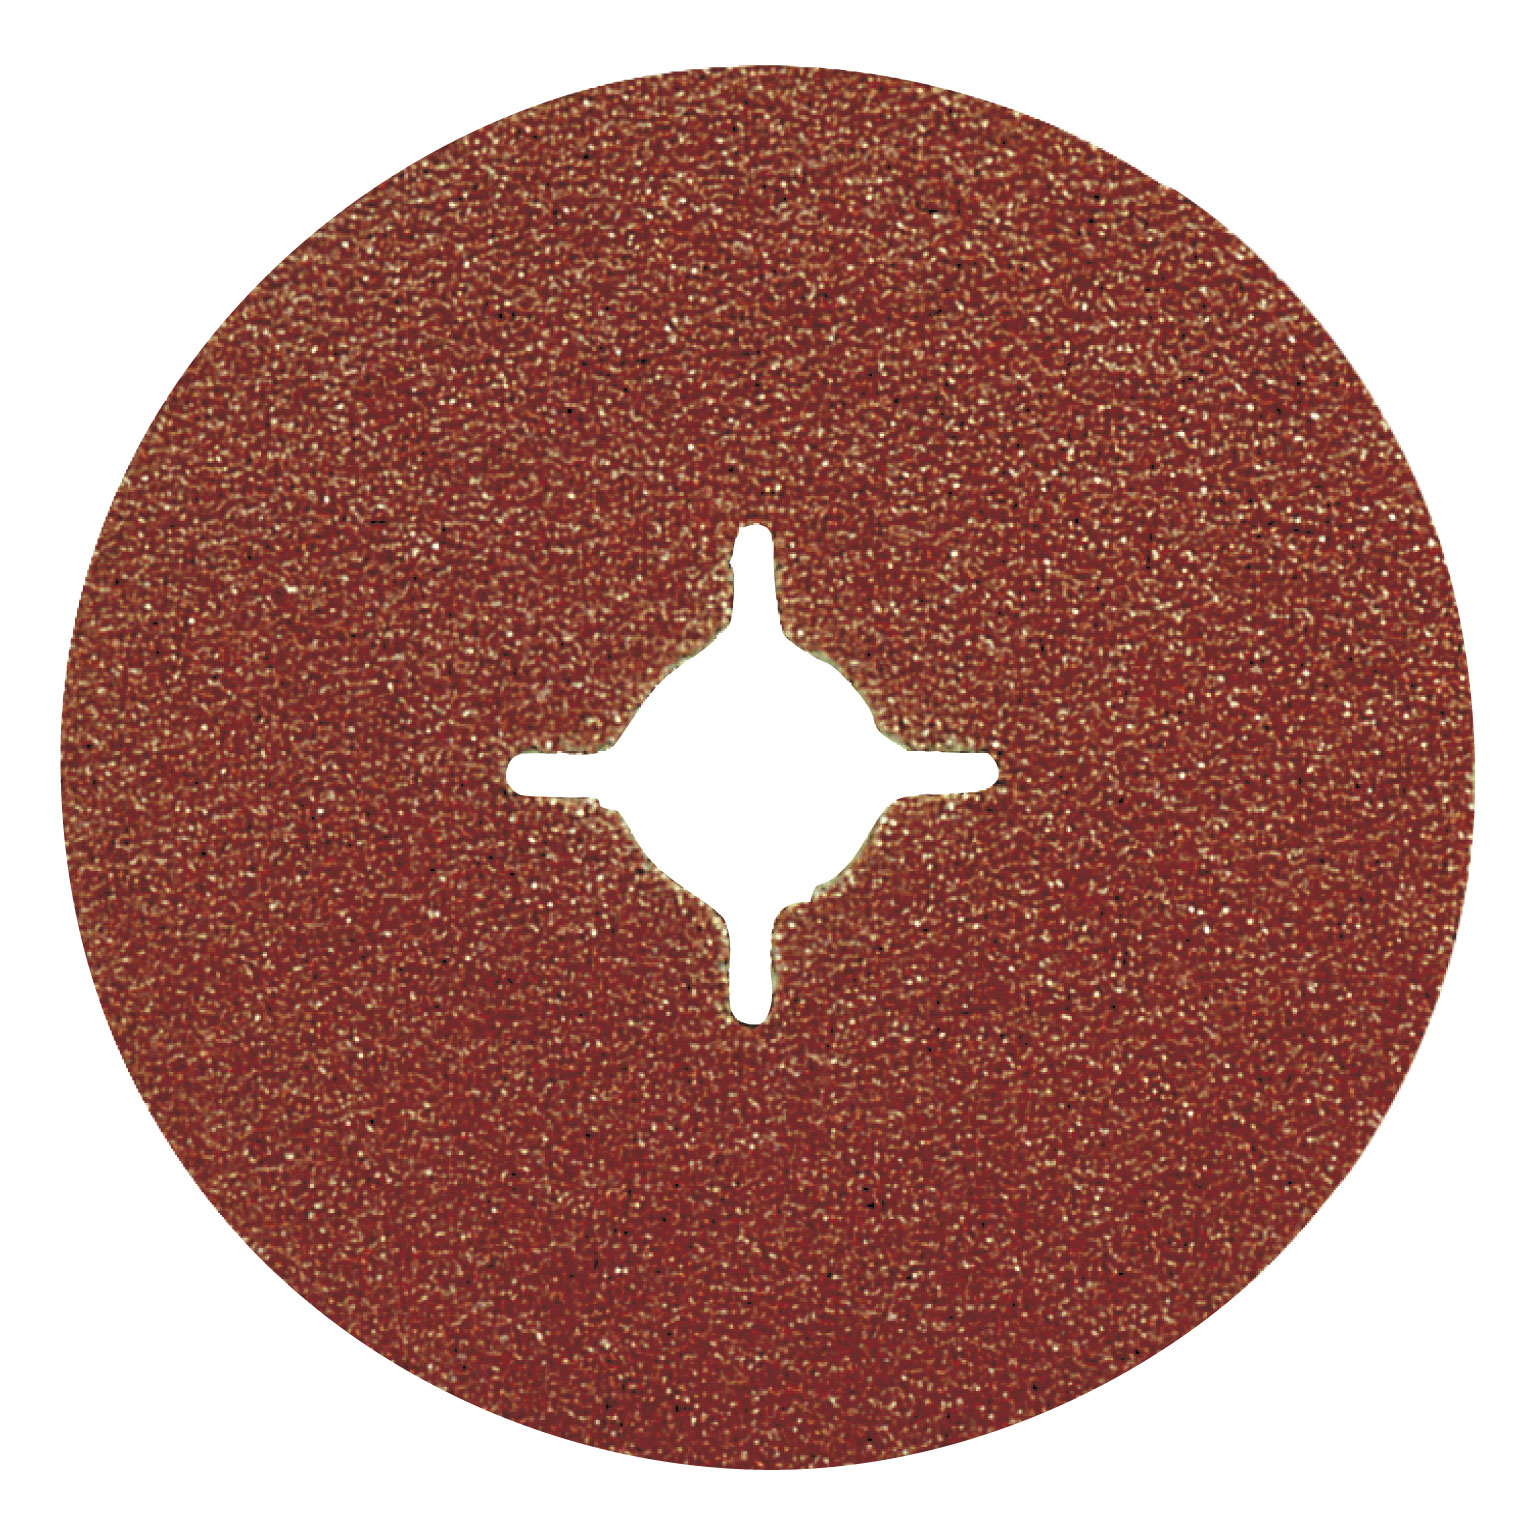 Dronco 115mm Fibre Disc 36 Grit